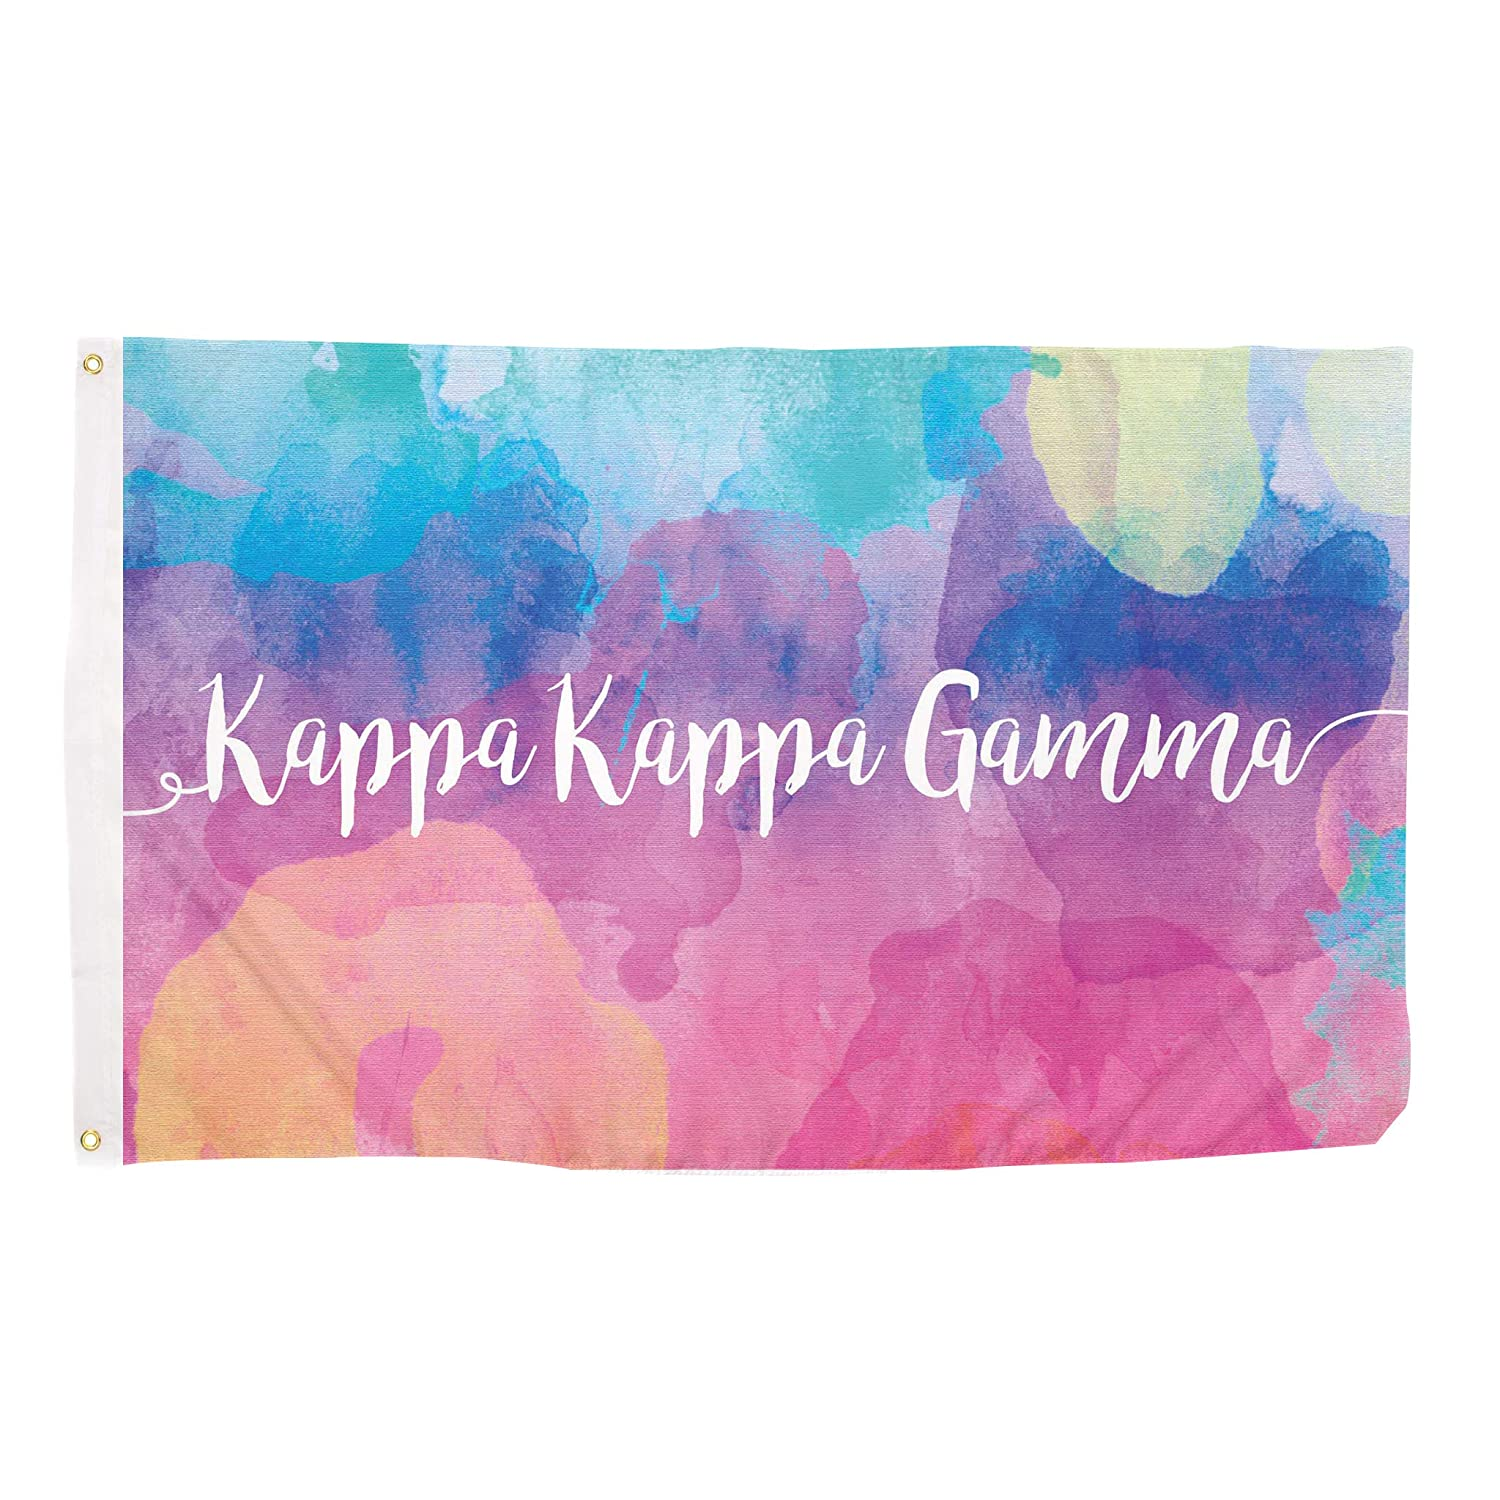 ca7d4387 Amazon.com : Kappa Kappa Gamma Water Color Sorority Flag Greek Letter Use  as a Banner Large 3 x 5 Feet Sign Decor kkg : Garden & Outdoor